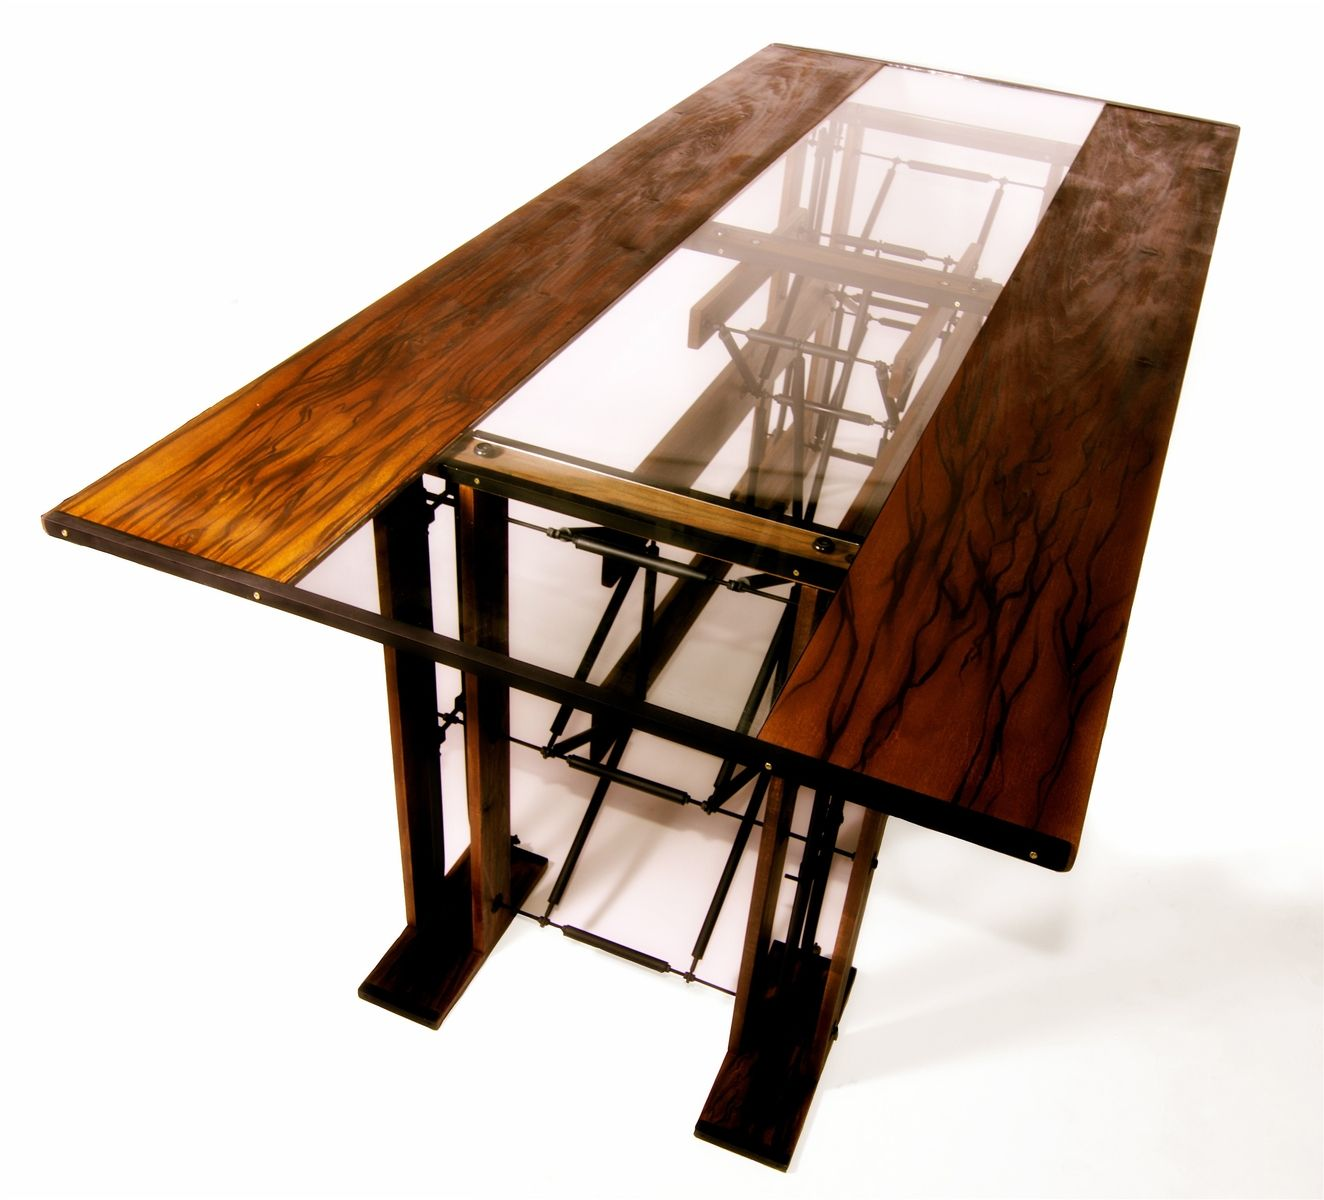 Hand made custom contemporary industrial eclectic dining table by interactive dezigns - Designer glass dining tables ...